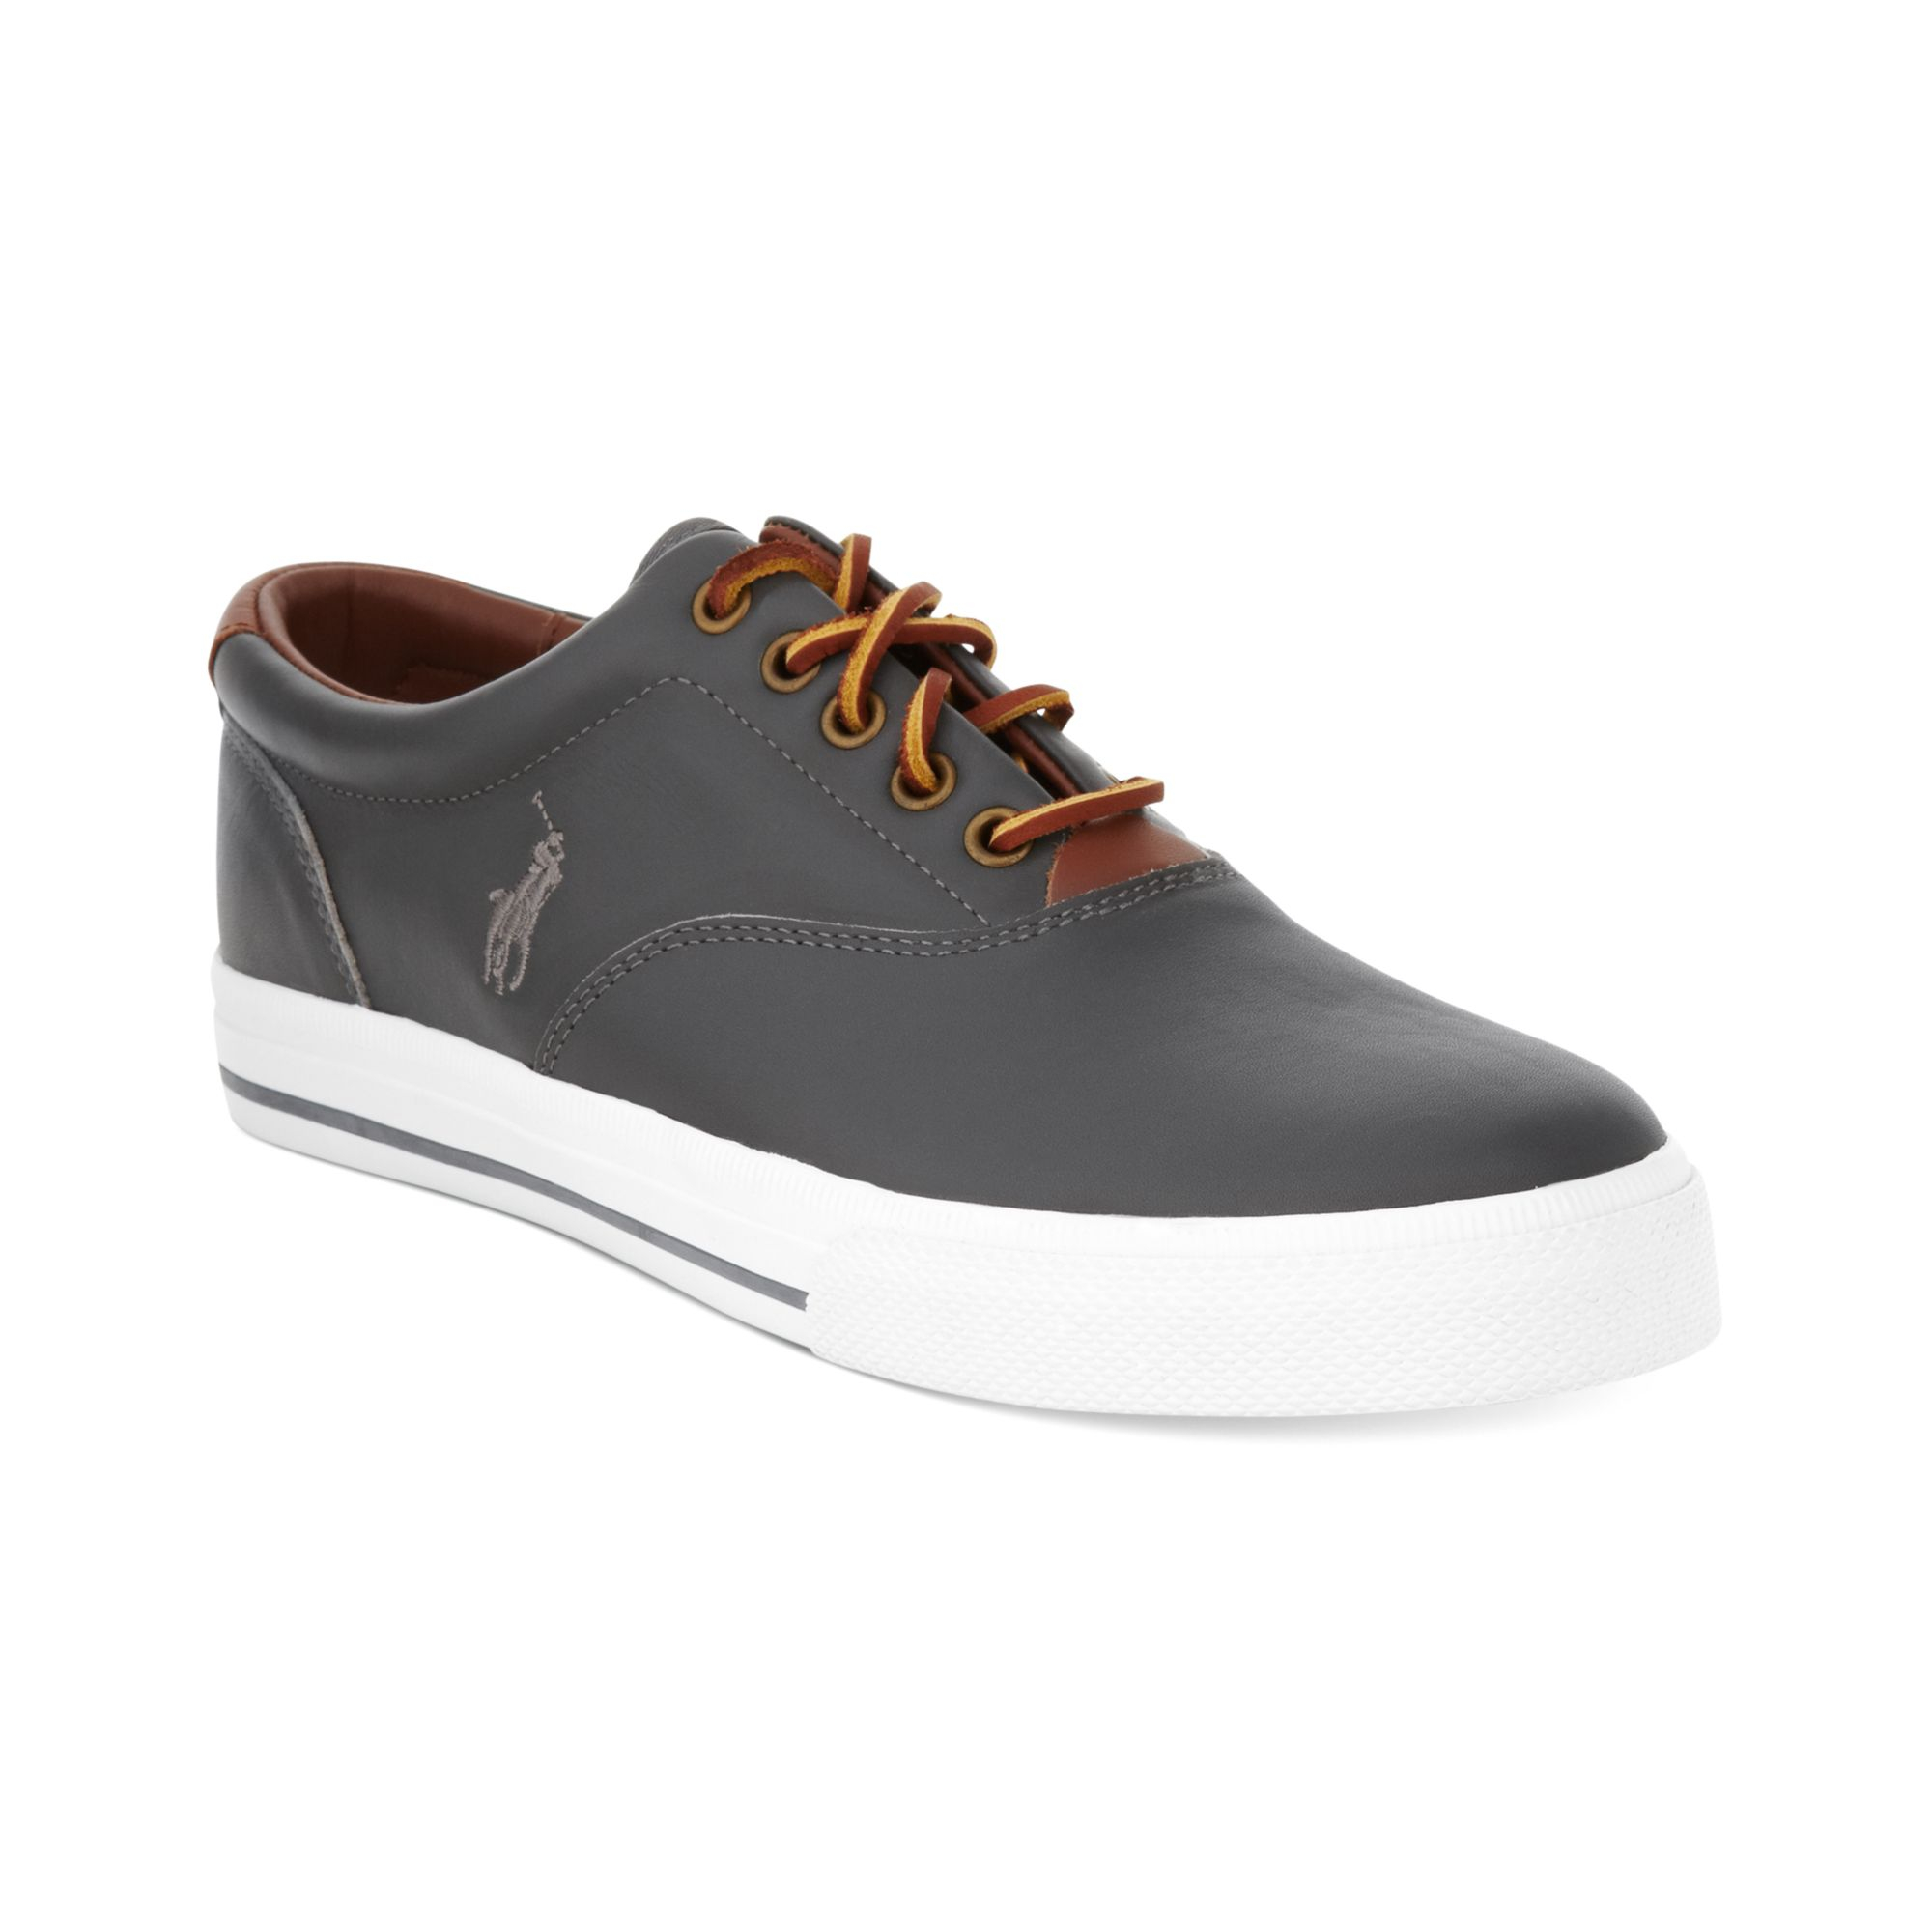 polo ralph lauren vaughn leather sneakers in gray for men grey. Black Bedroom Furniture Sets. Home Design Ideas